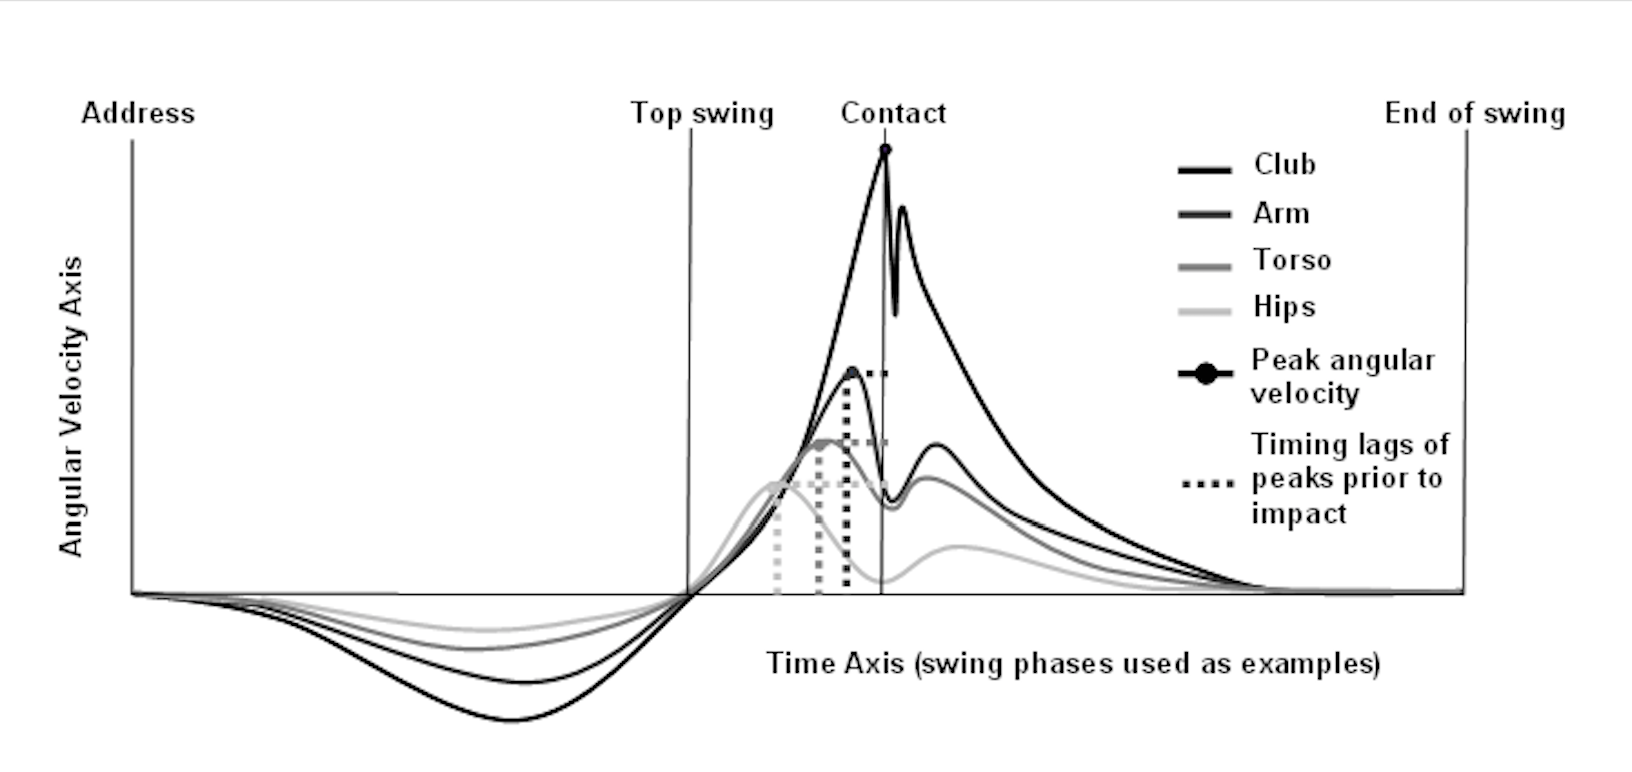 Figure 1  A Model of an Ideal Kinematic Sequence for a Golf Swing, Highlighting 4 Body Segments: Hips, Shoulders (Trunk), Wrists and Clubhead (Langdown et al., 2012).